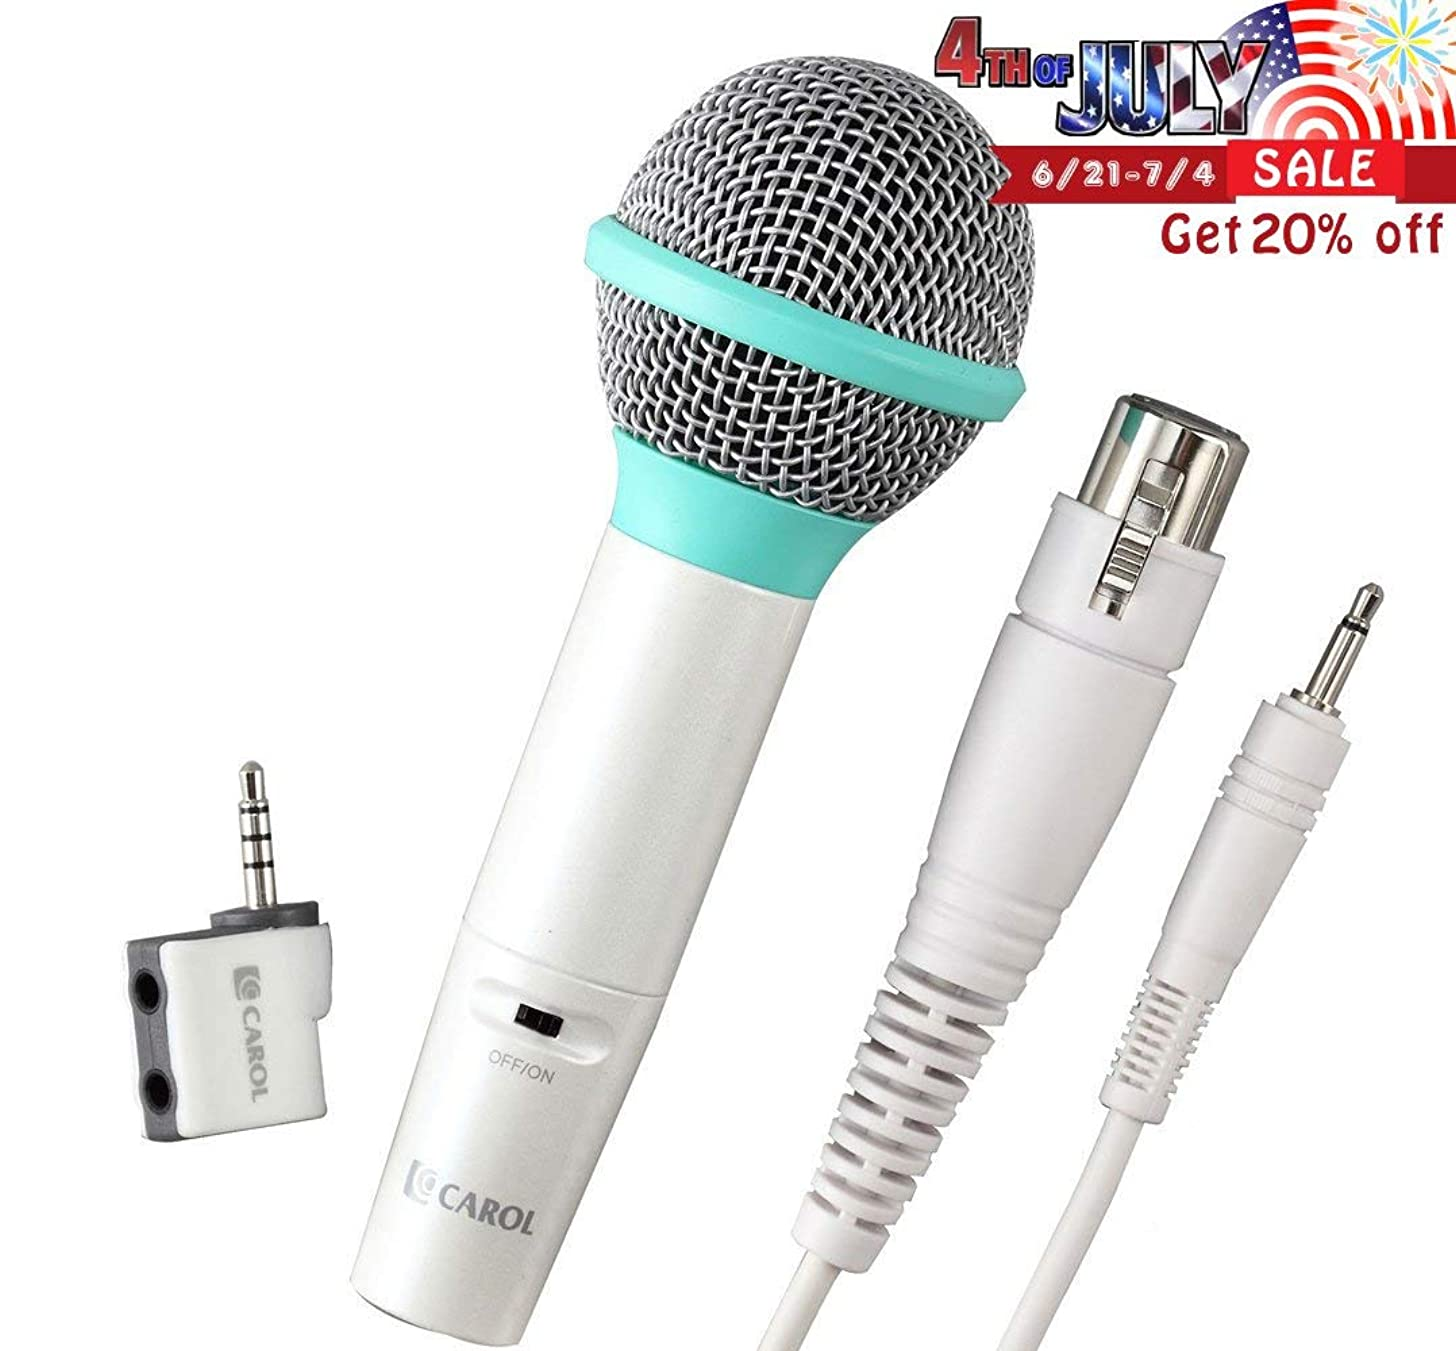 Portable Dynamic Microphone Set with Carrying Case for iOS Devices, Turn Your iPhone/iPad Into a Karaoke Machine | by CAROL ICT-12+GS-77S (Green)